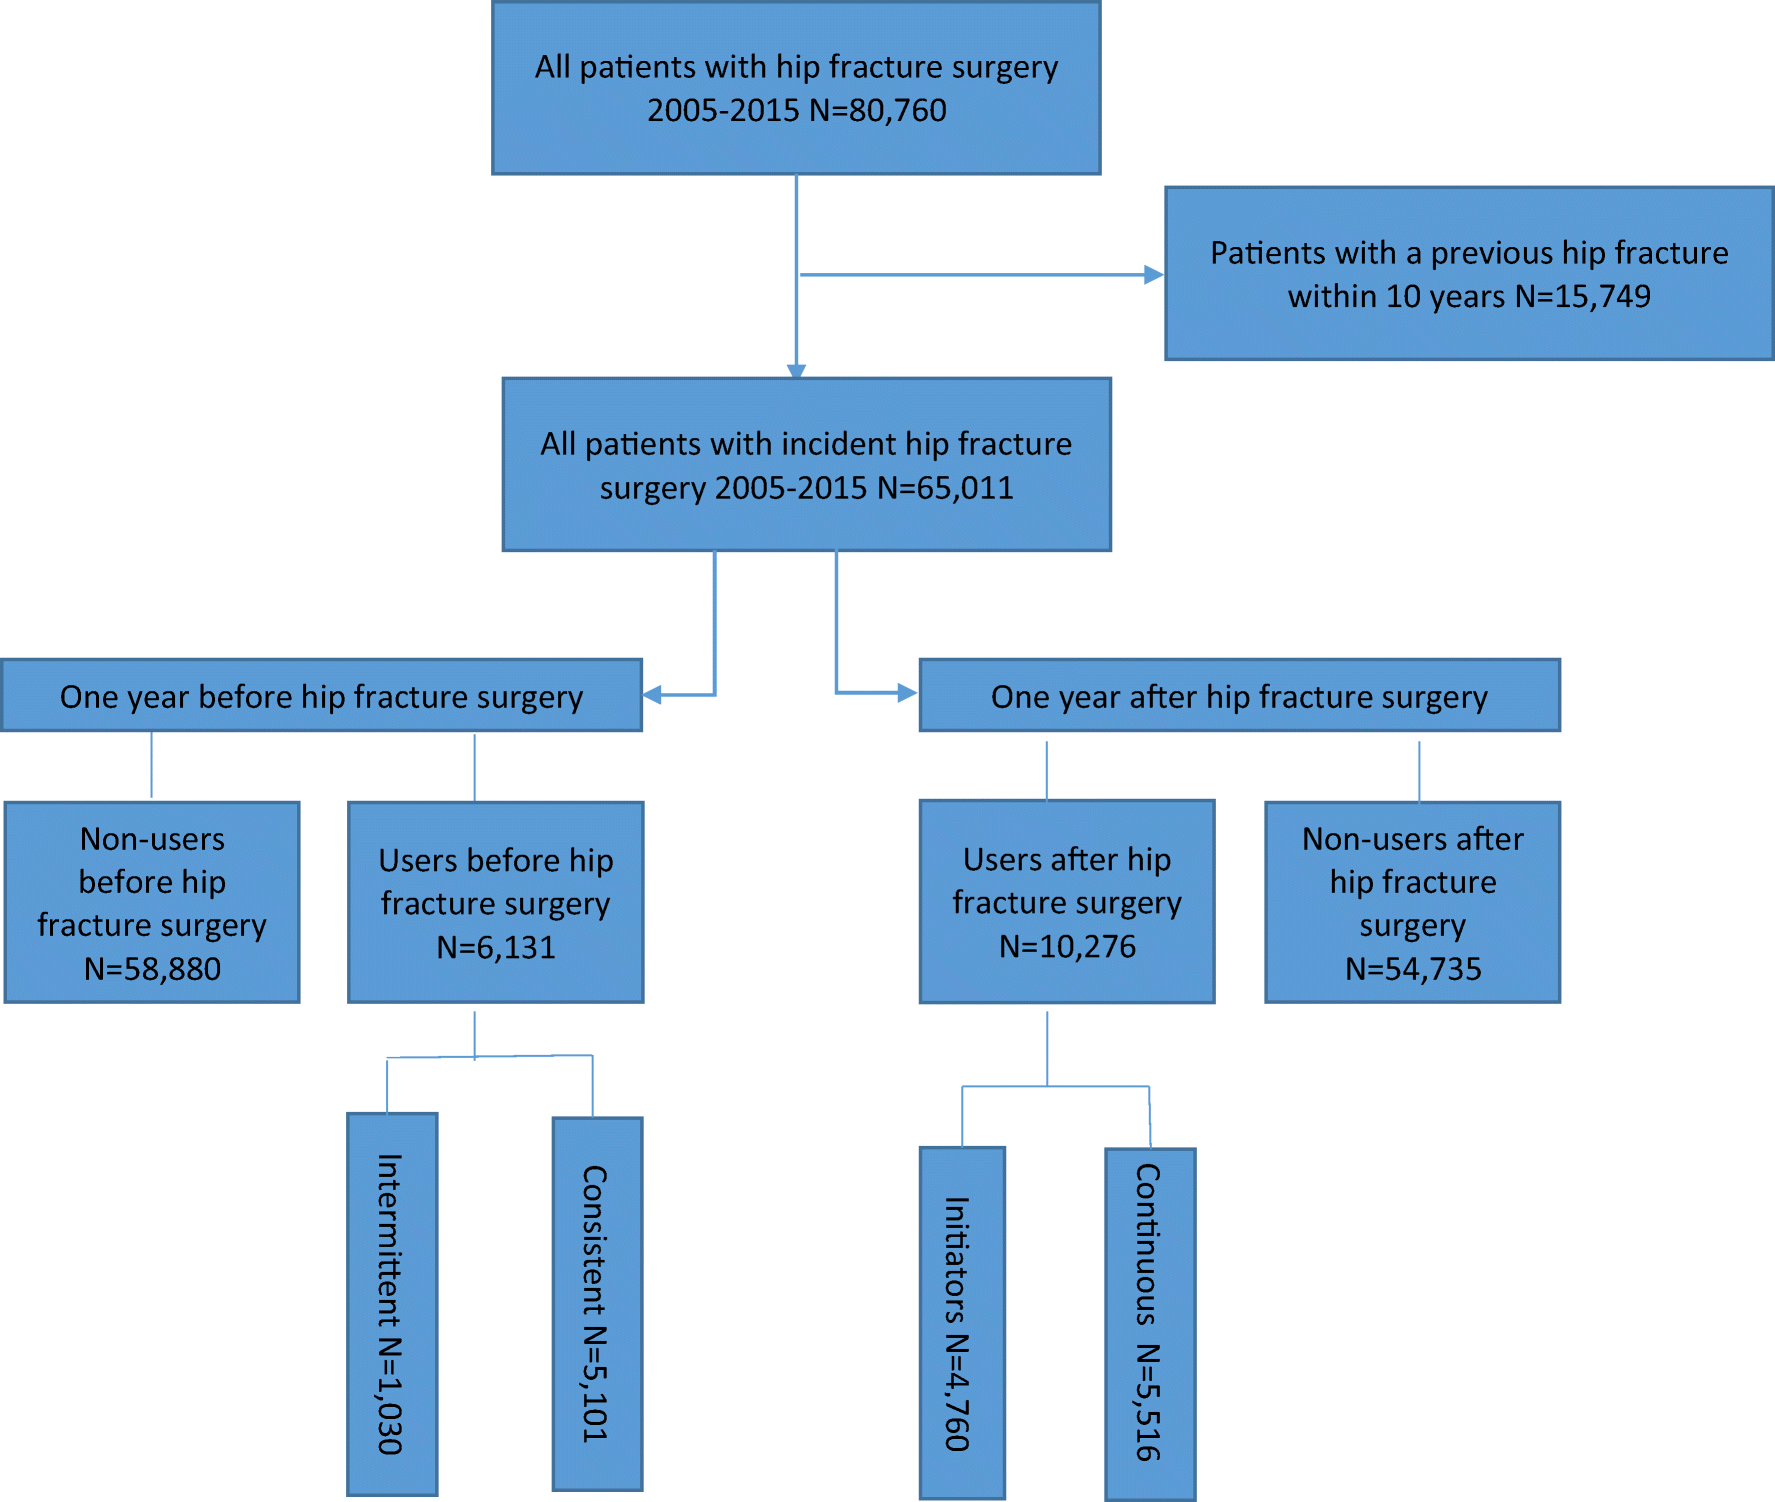 Use of anti-osteoporosis medication dispensing by patients